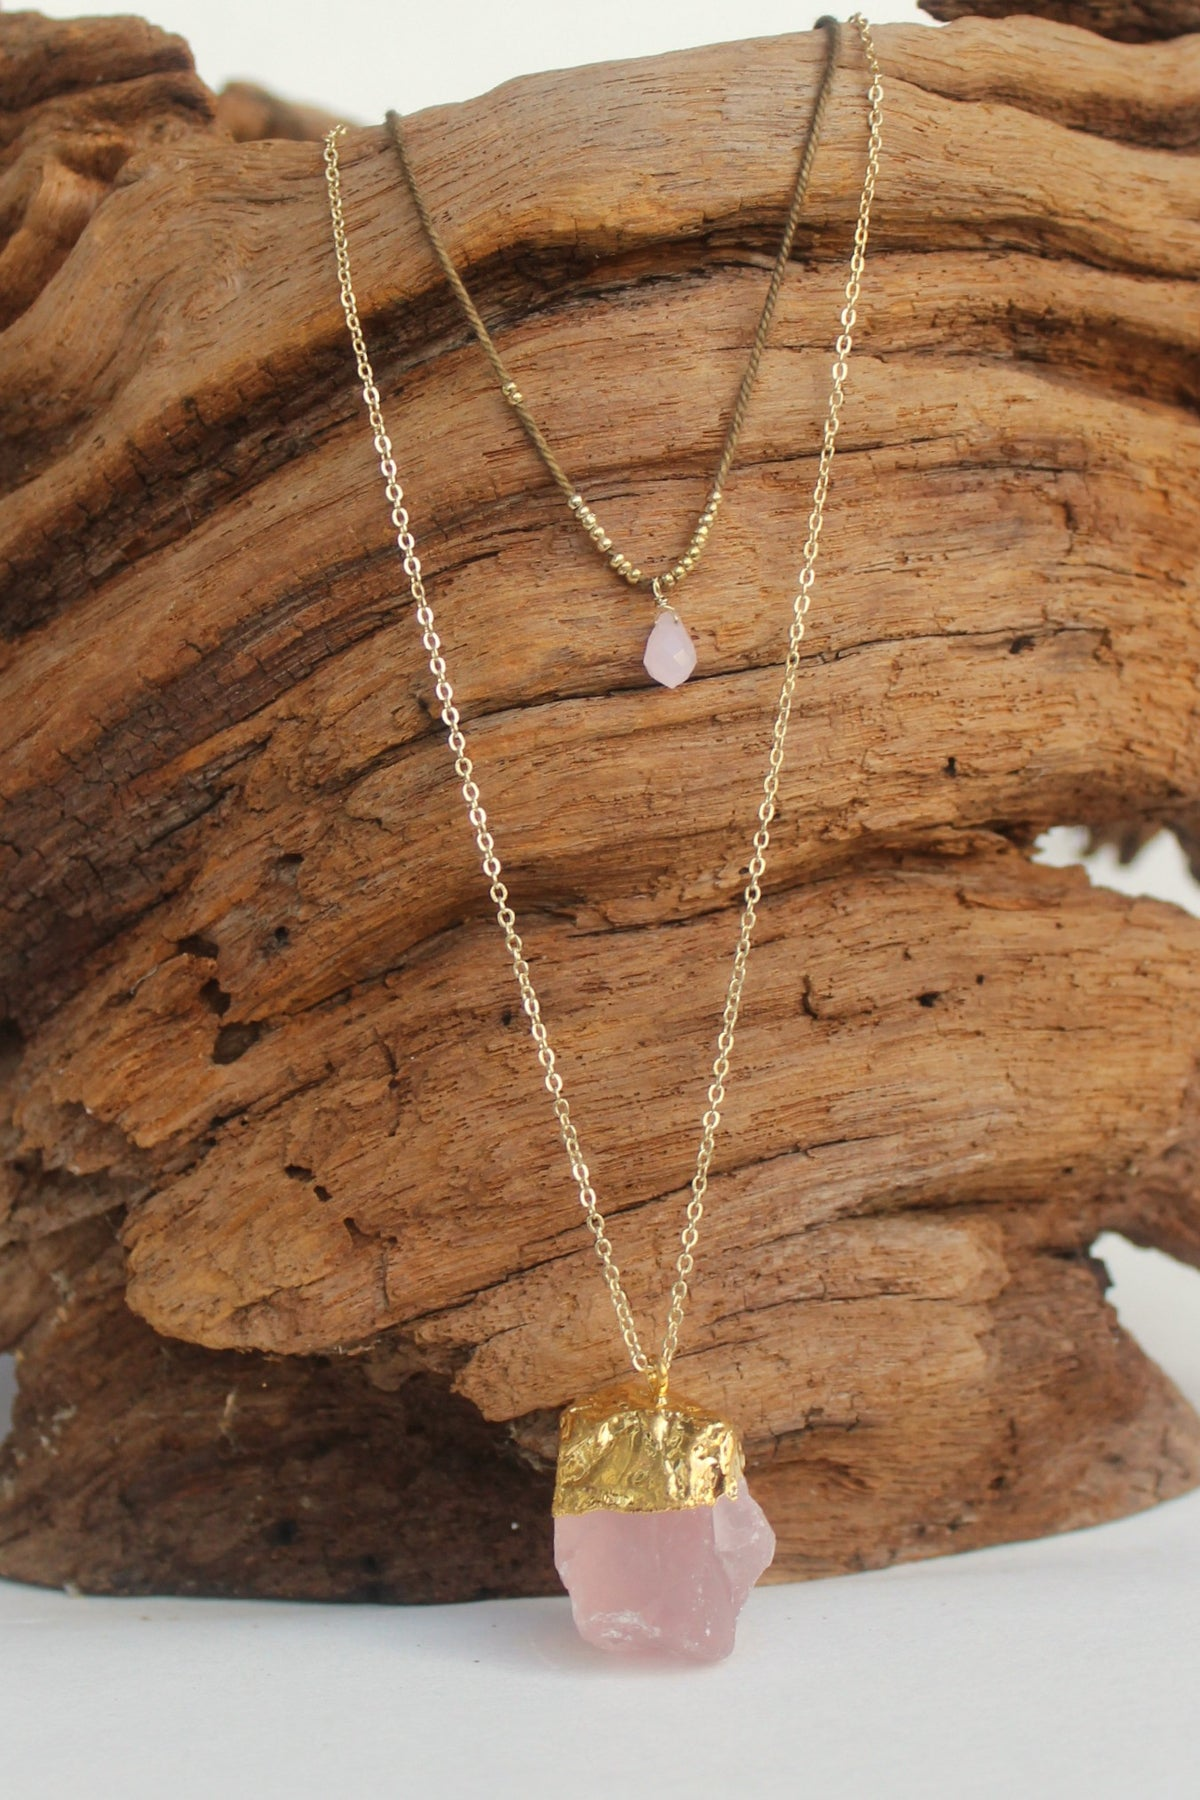 Layered Rose Quartz Pendant Necklace, Pink